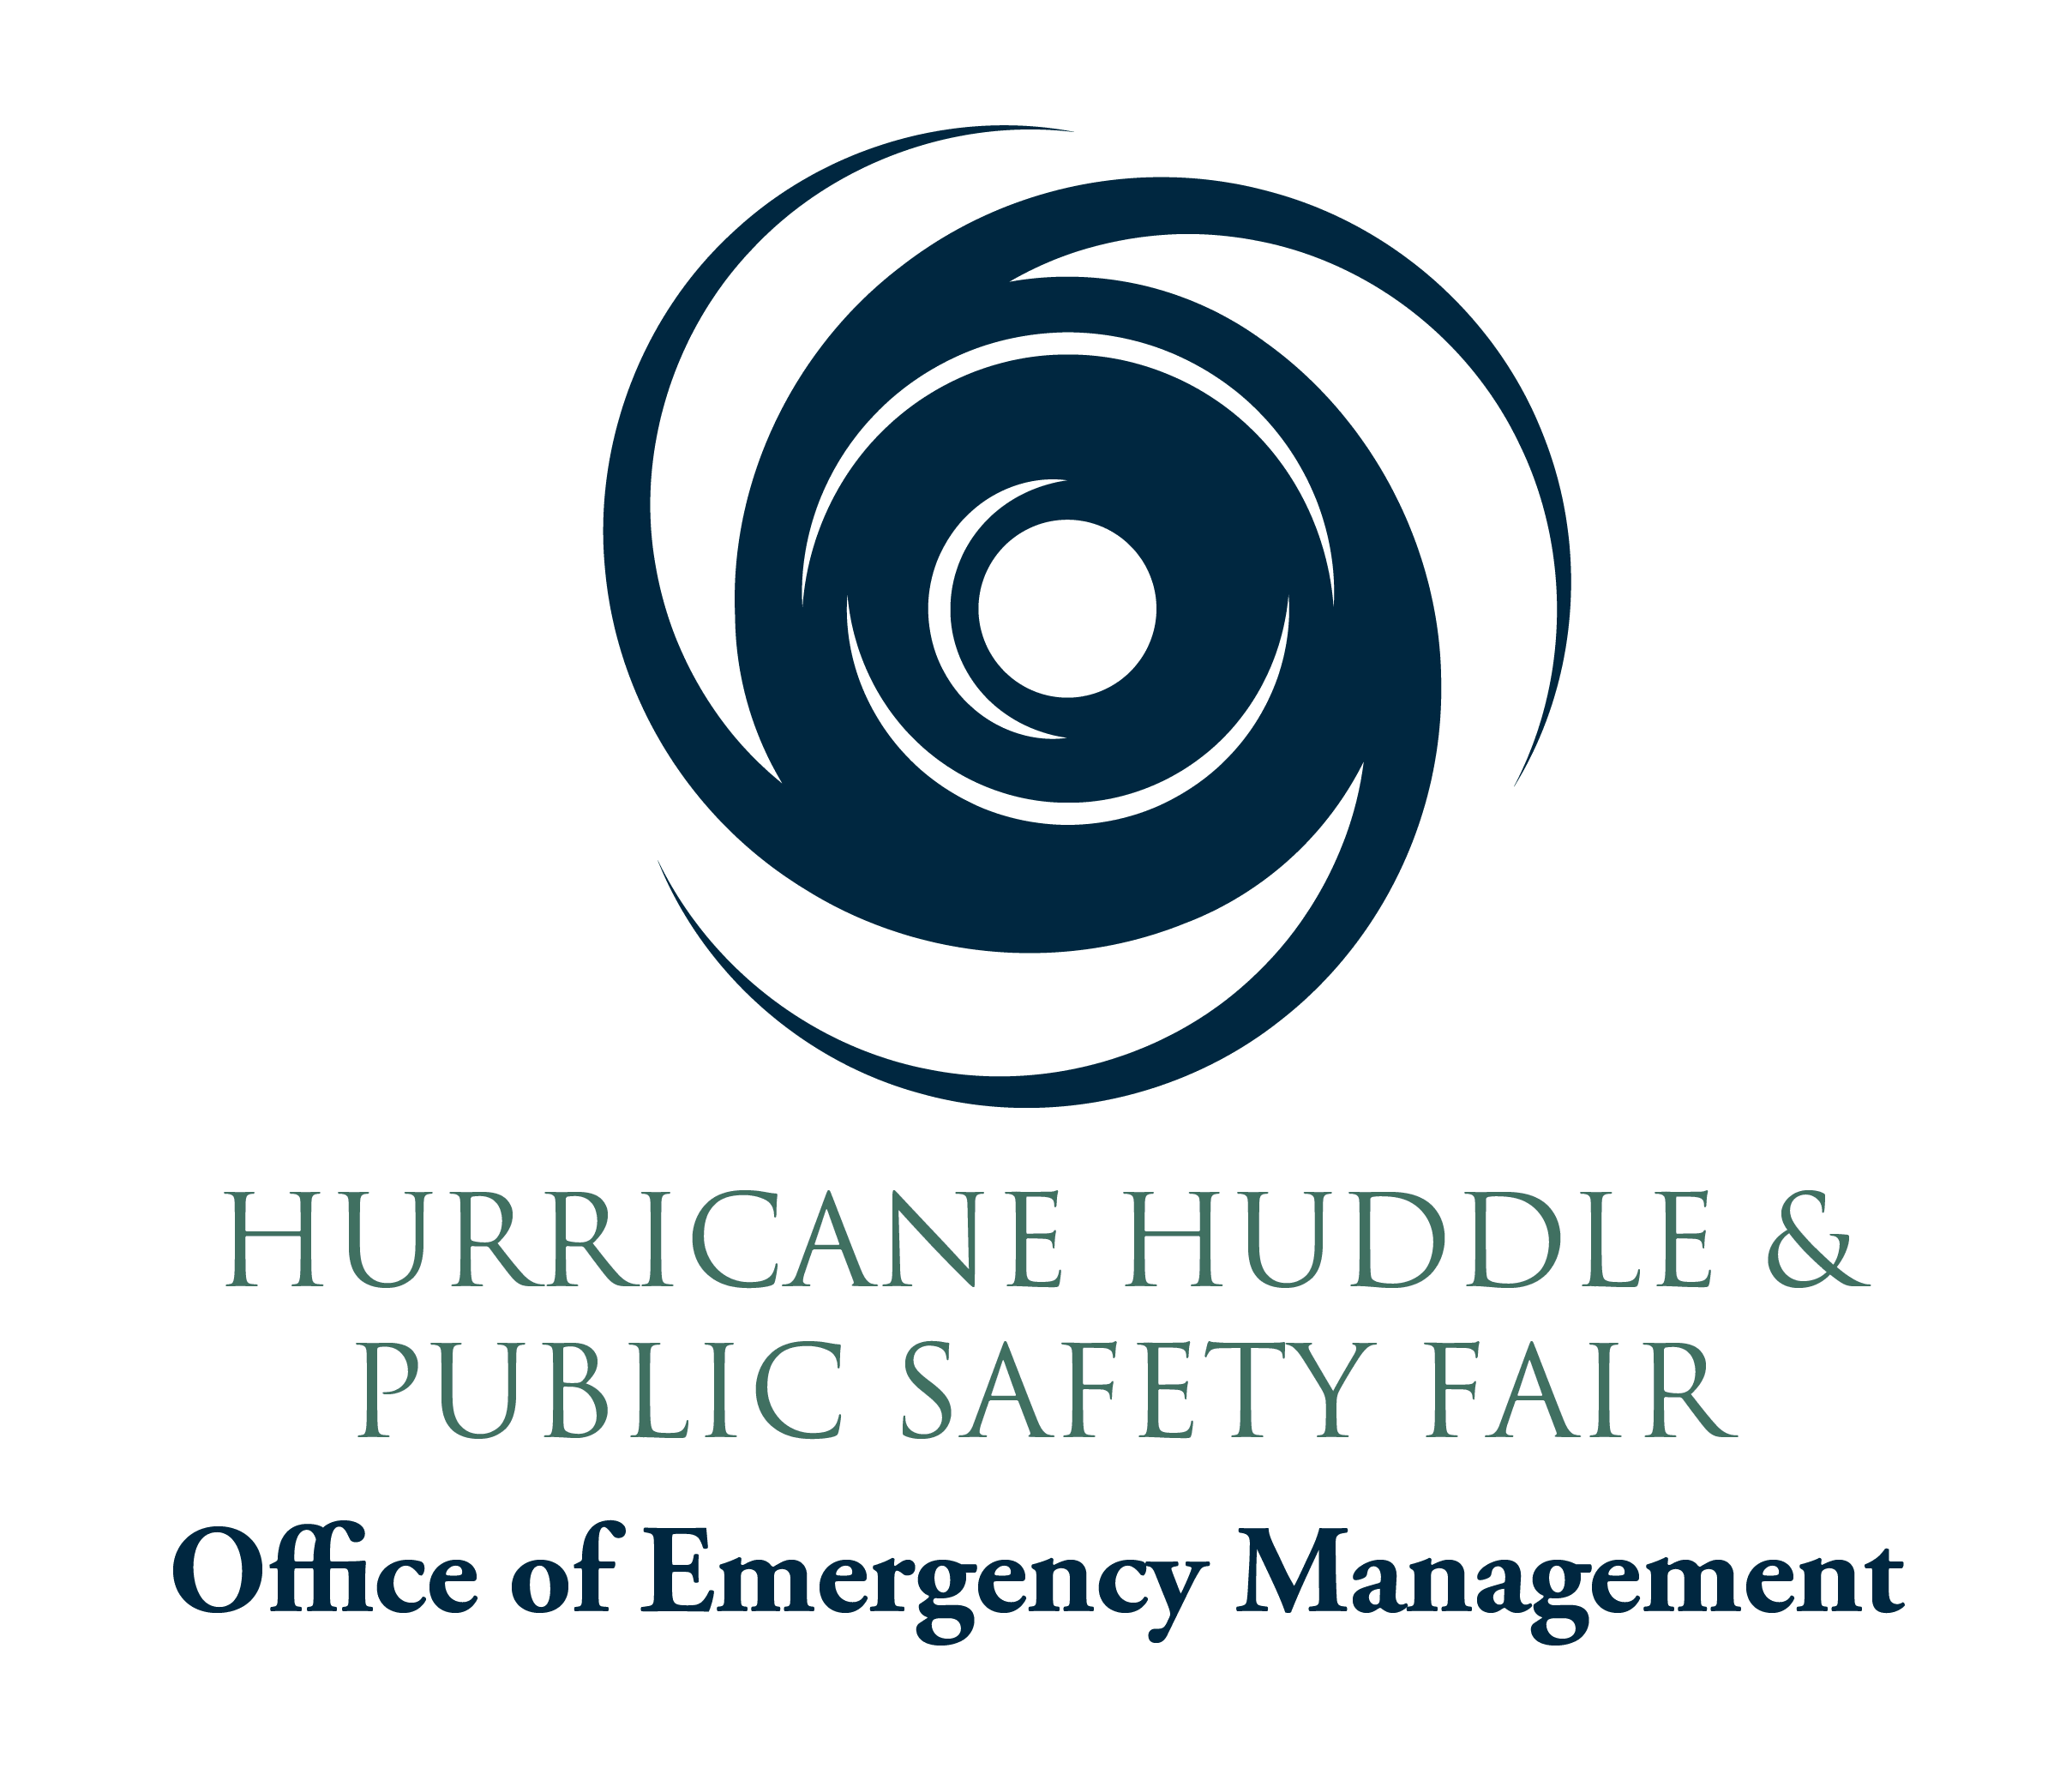 2019 Hurricane Huddle event graphic with hurricane line drawing